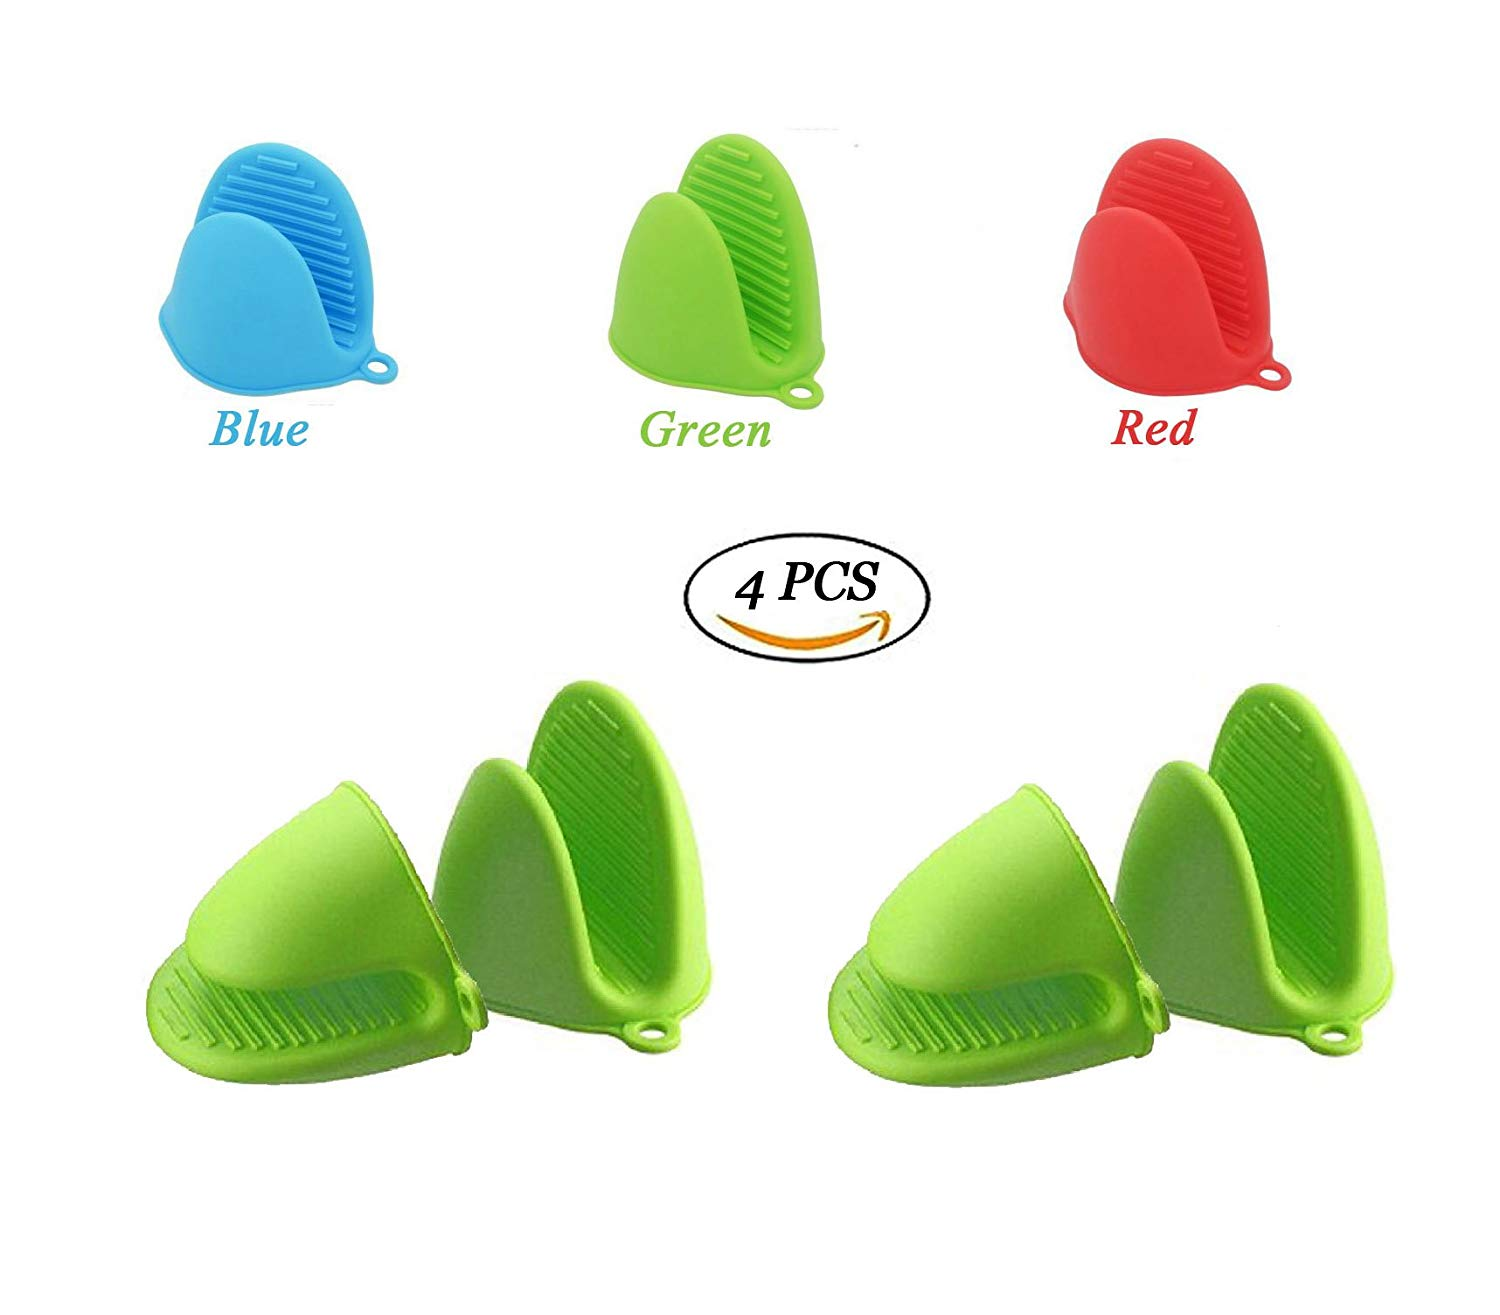 4 PCS Bestga Silicone Pot Holder Mini Oven Mitt Cooking Pinch Grips Kitchen Heat Resistant Solution Cooking Baking Potholders,Green